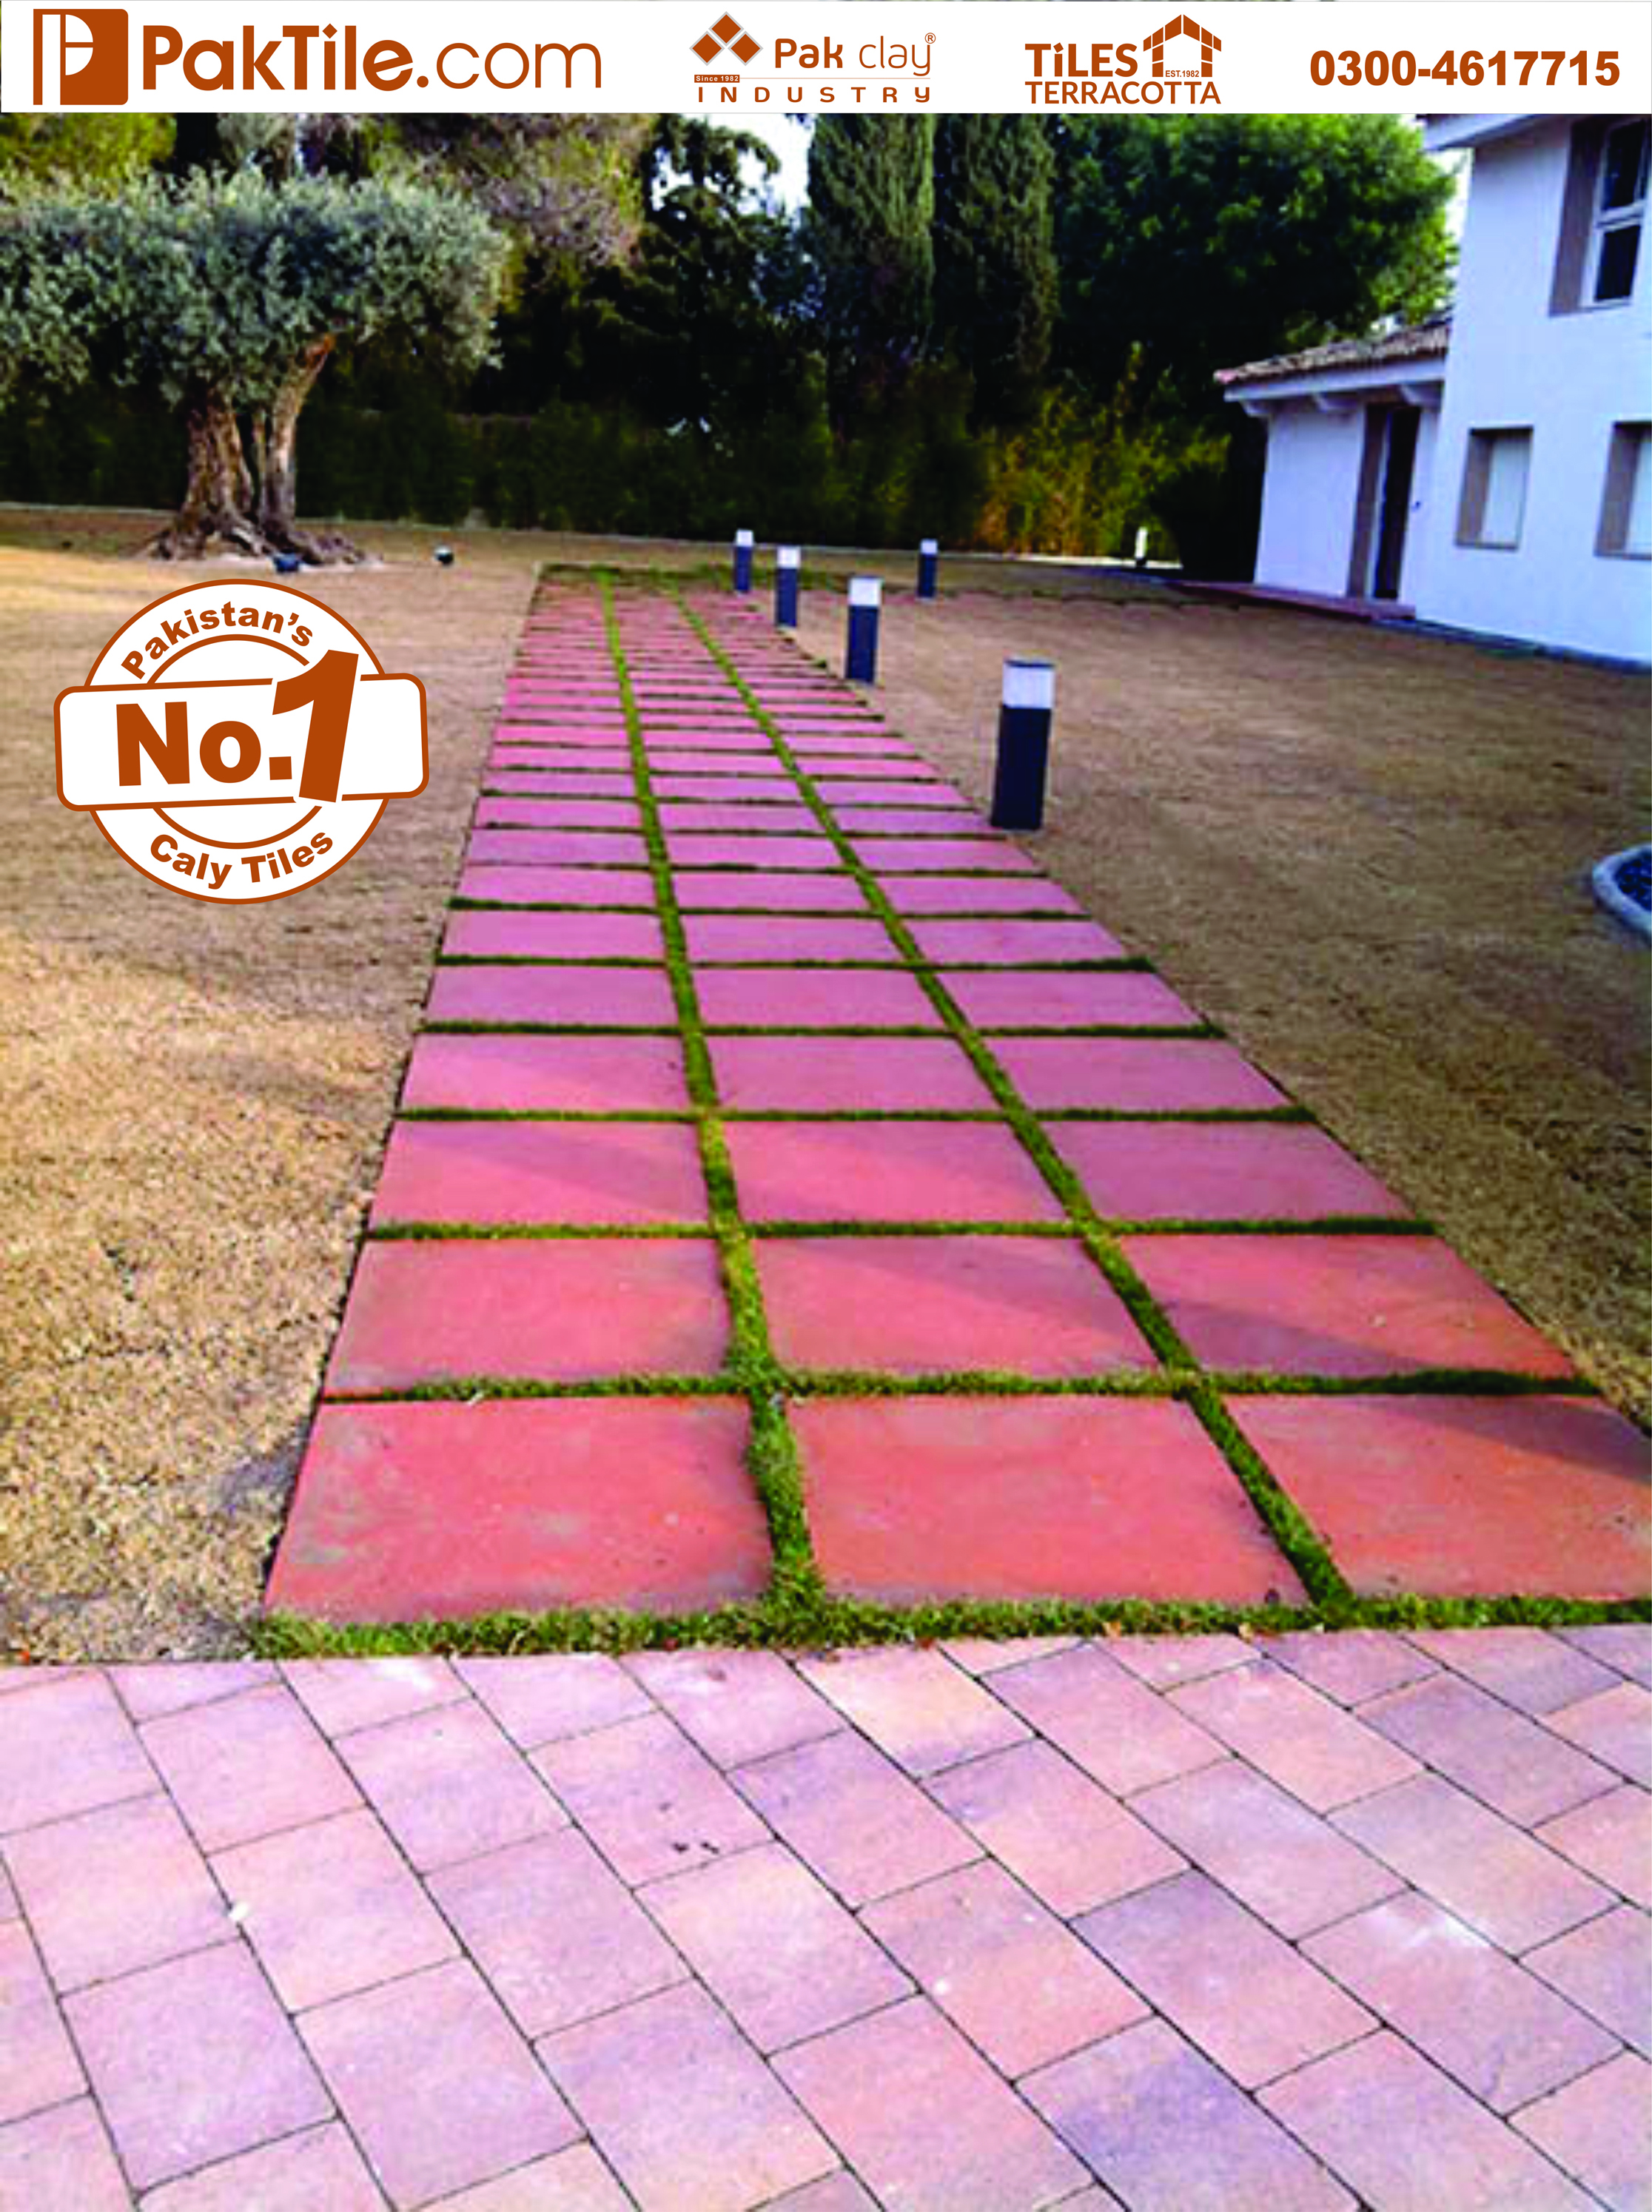 13 Pak Clay Tiles Home Sidewalk Terracotta Grass Pavers Floor Tiles in Pakistan Images.